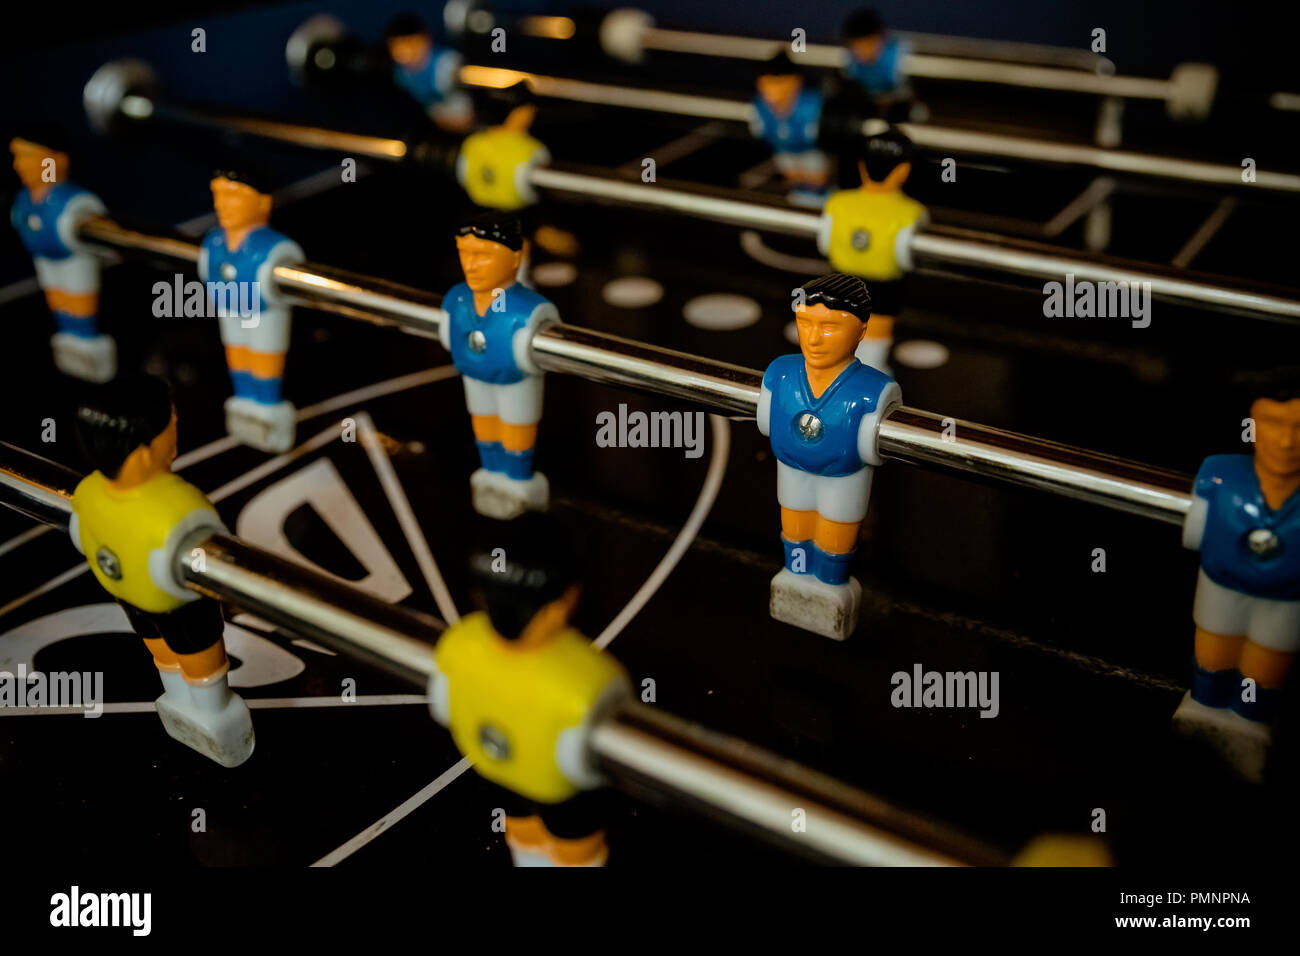 Table football game with yellow and blue players.Selective focus.able Football Game Hobby or Leisure.sport team football players.Enjoying Table Soccer Game Inside the Office During their Break Time. - Stock Image